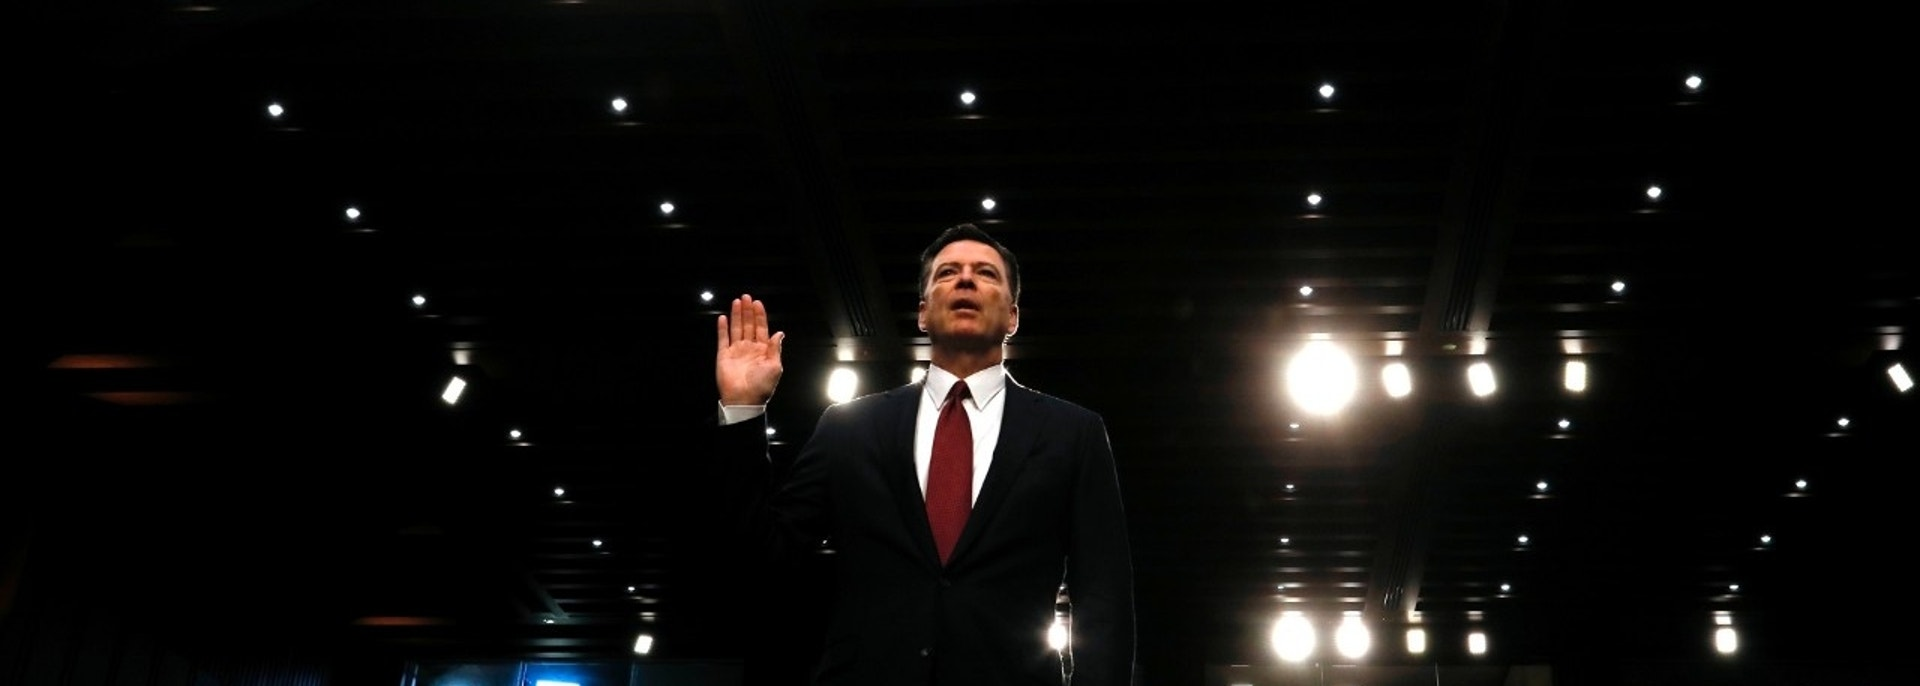 Former FBI Director James Comey is sworn in prior to testifying before a Senate Intelligence Committee hearing on Russia's alleged interference in the 2016 U.S. presidential election on Capitol Hill in Washington, U.S., June 8, 2017. REUTERS/Jonathan Ernst - HP1ED681D7GSU